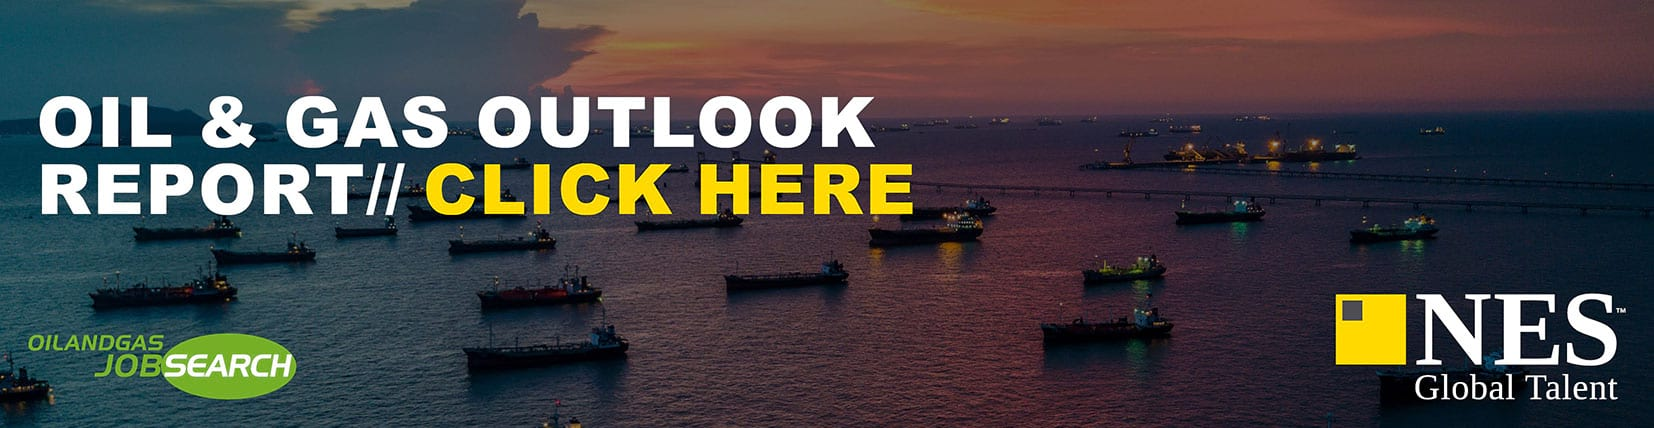 oil-and-gas-outlook-report-banner